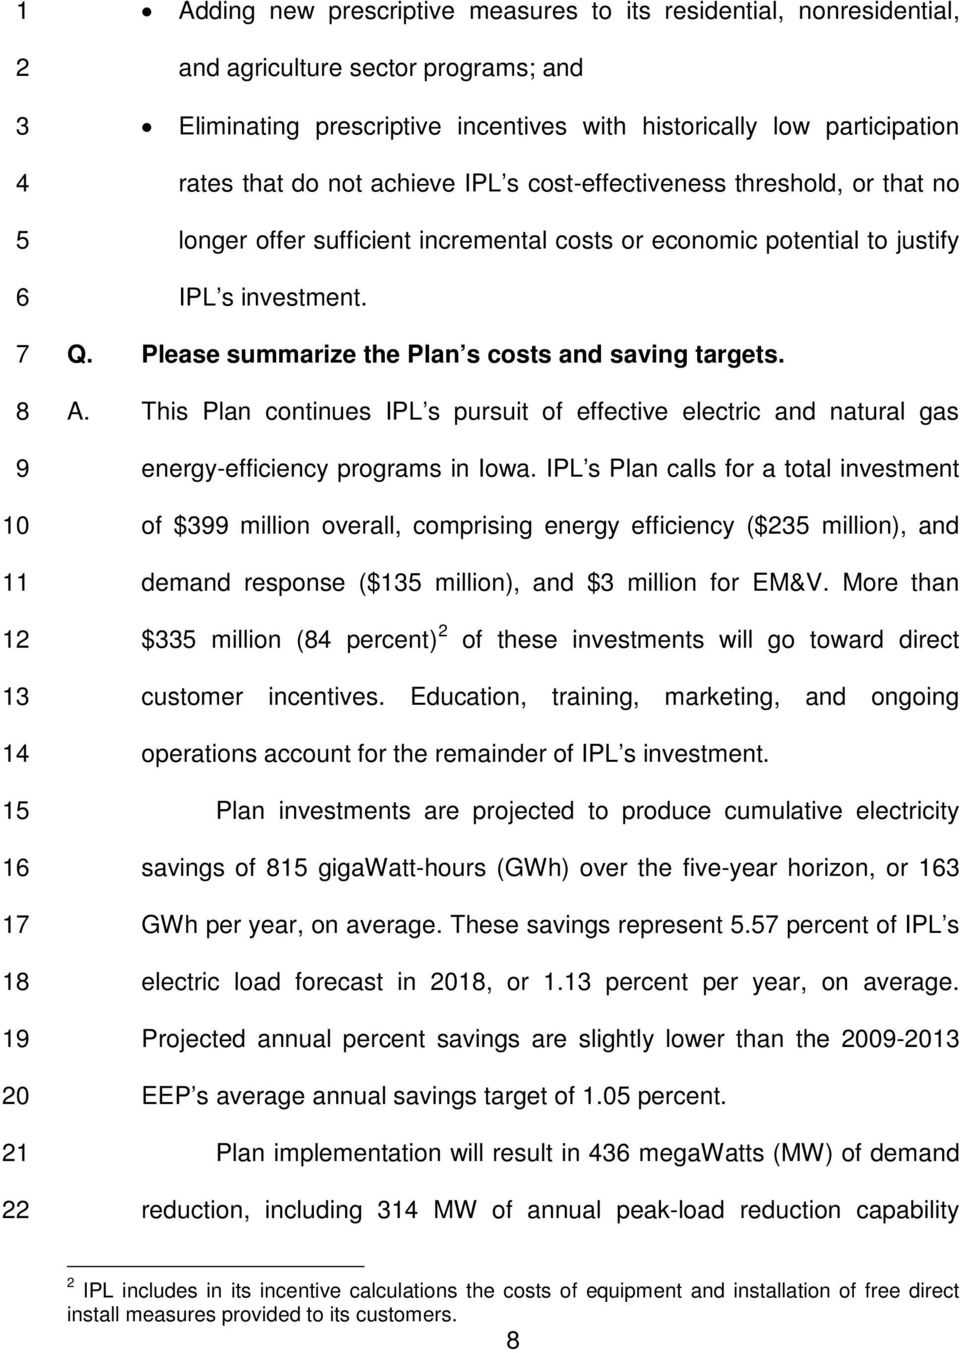 Please summarize the Plan s costs and saving targets. A. This Plan continues IPL s pursuit of effective electric and natural gas energy-efficiency programs in Iowa.